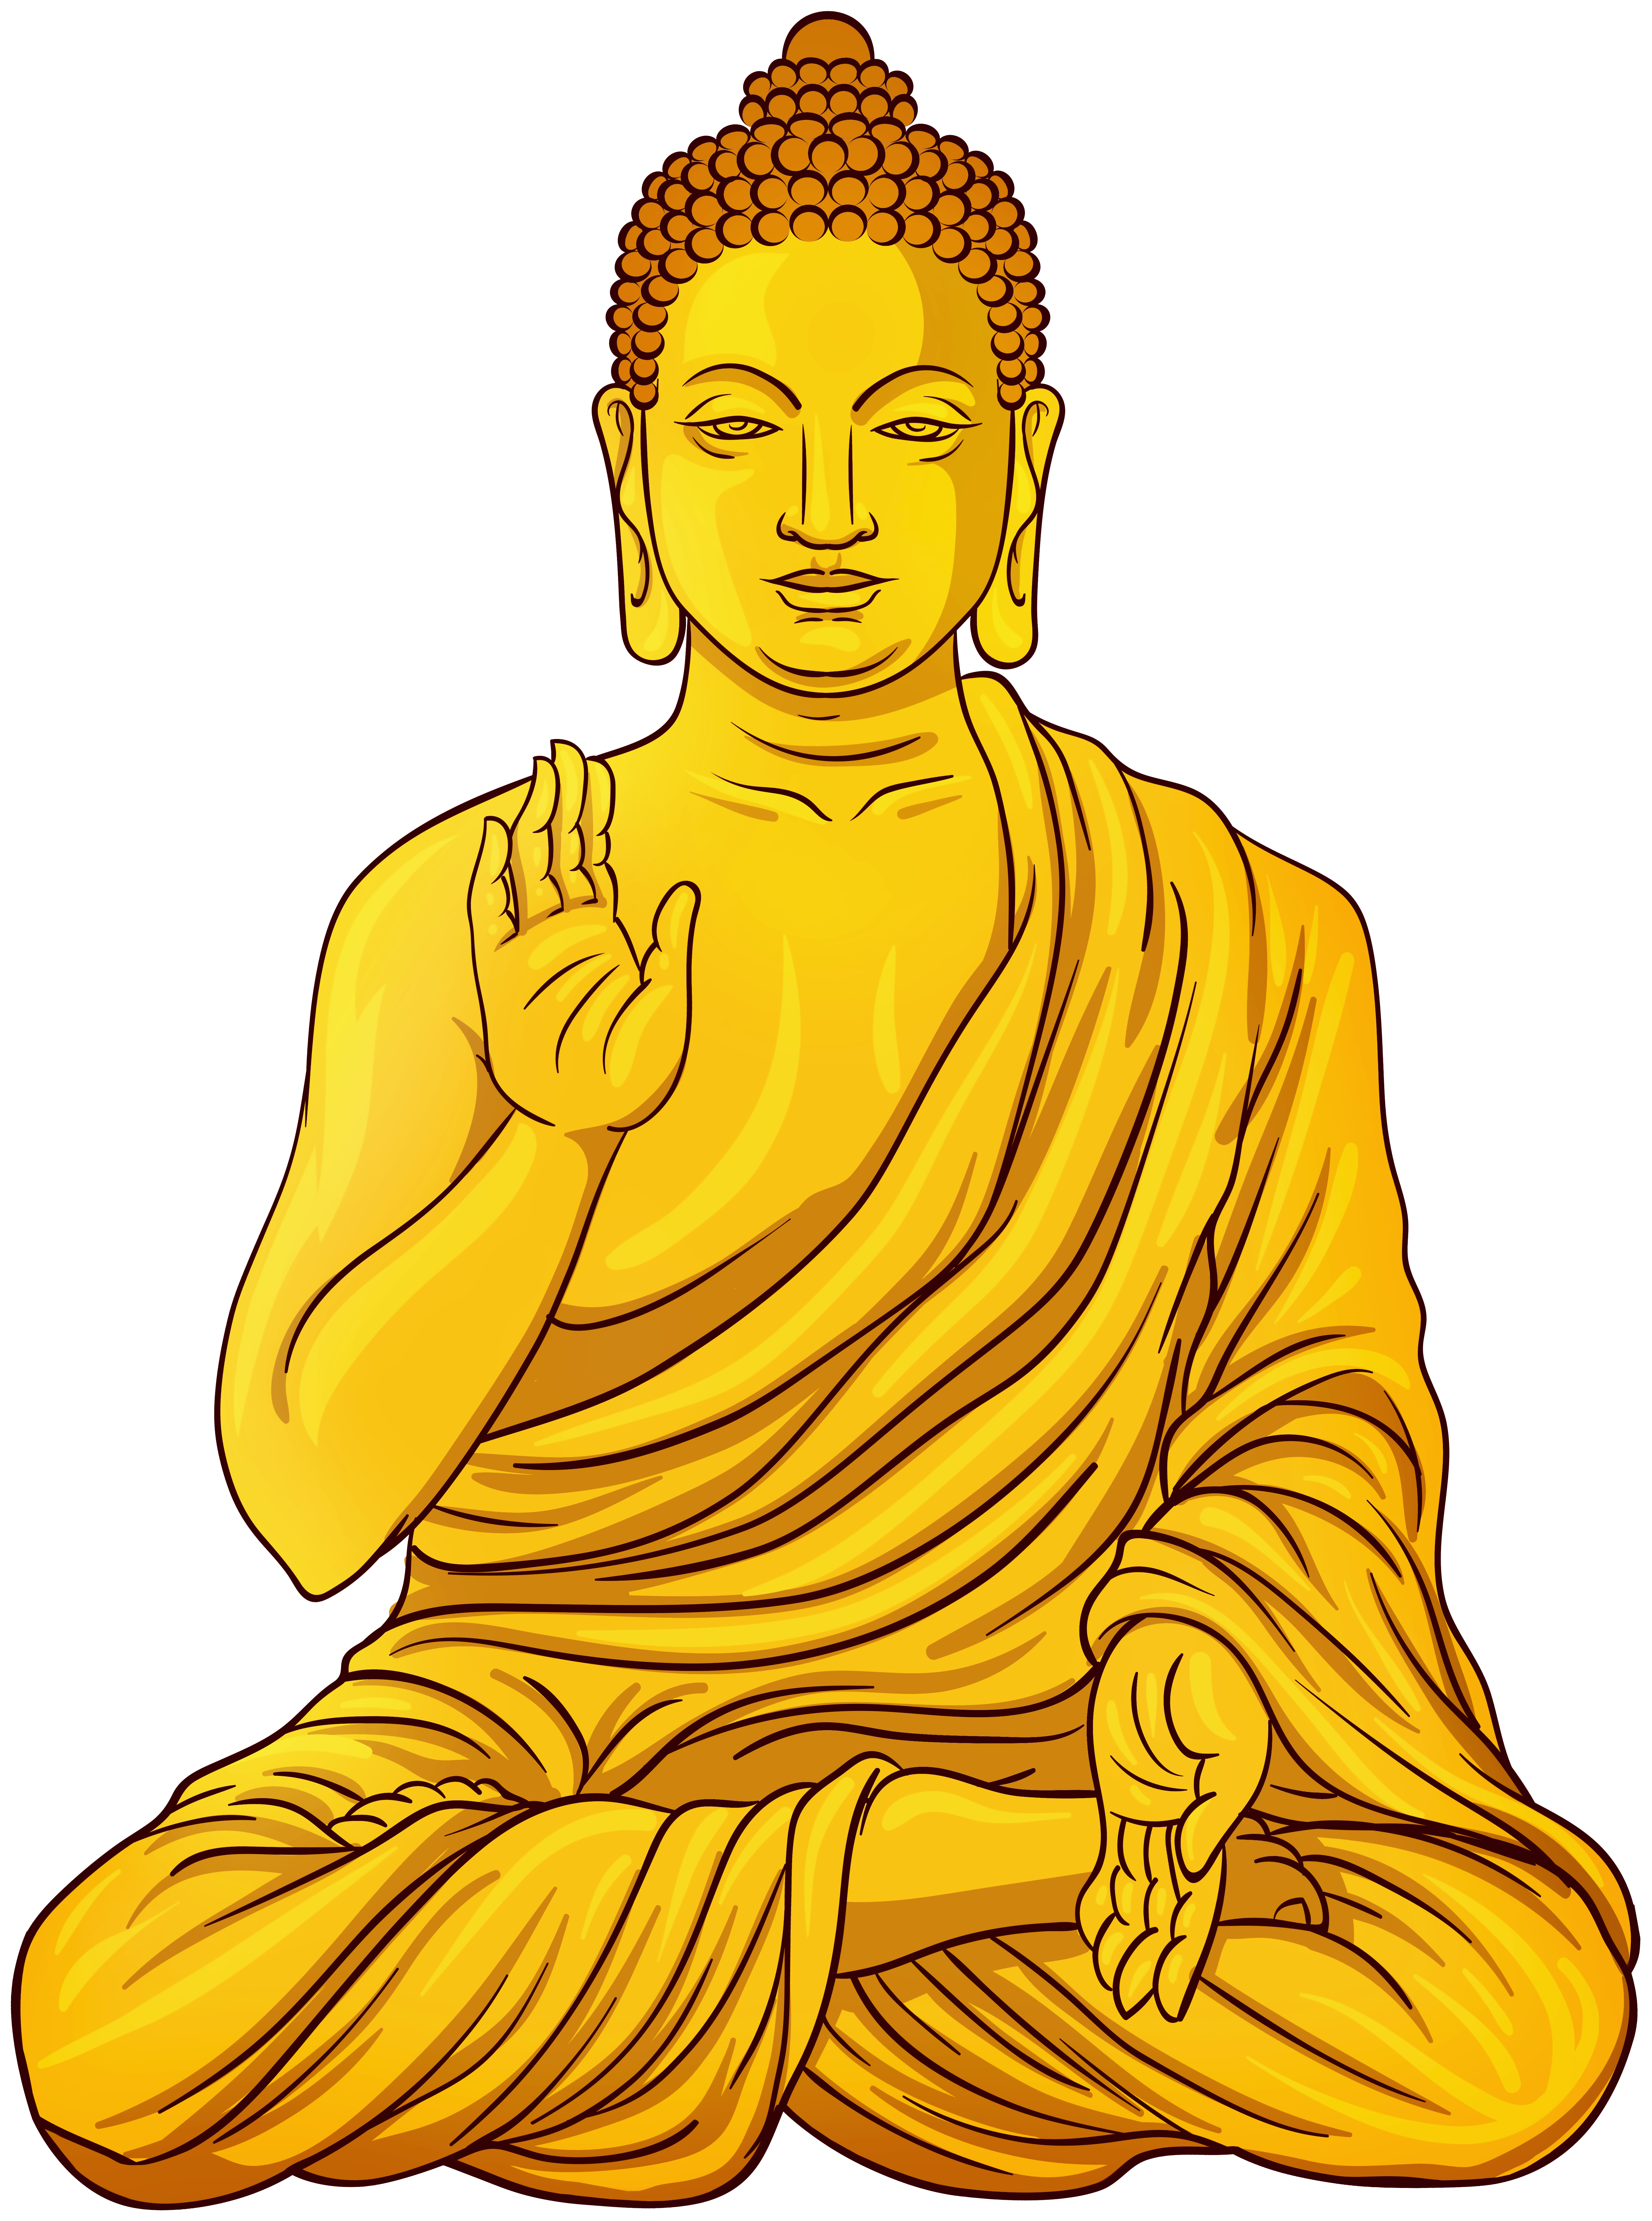 Gold statue png clip. Buddha clipart yellow picture transparent library